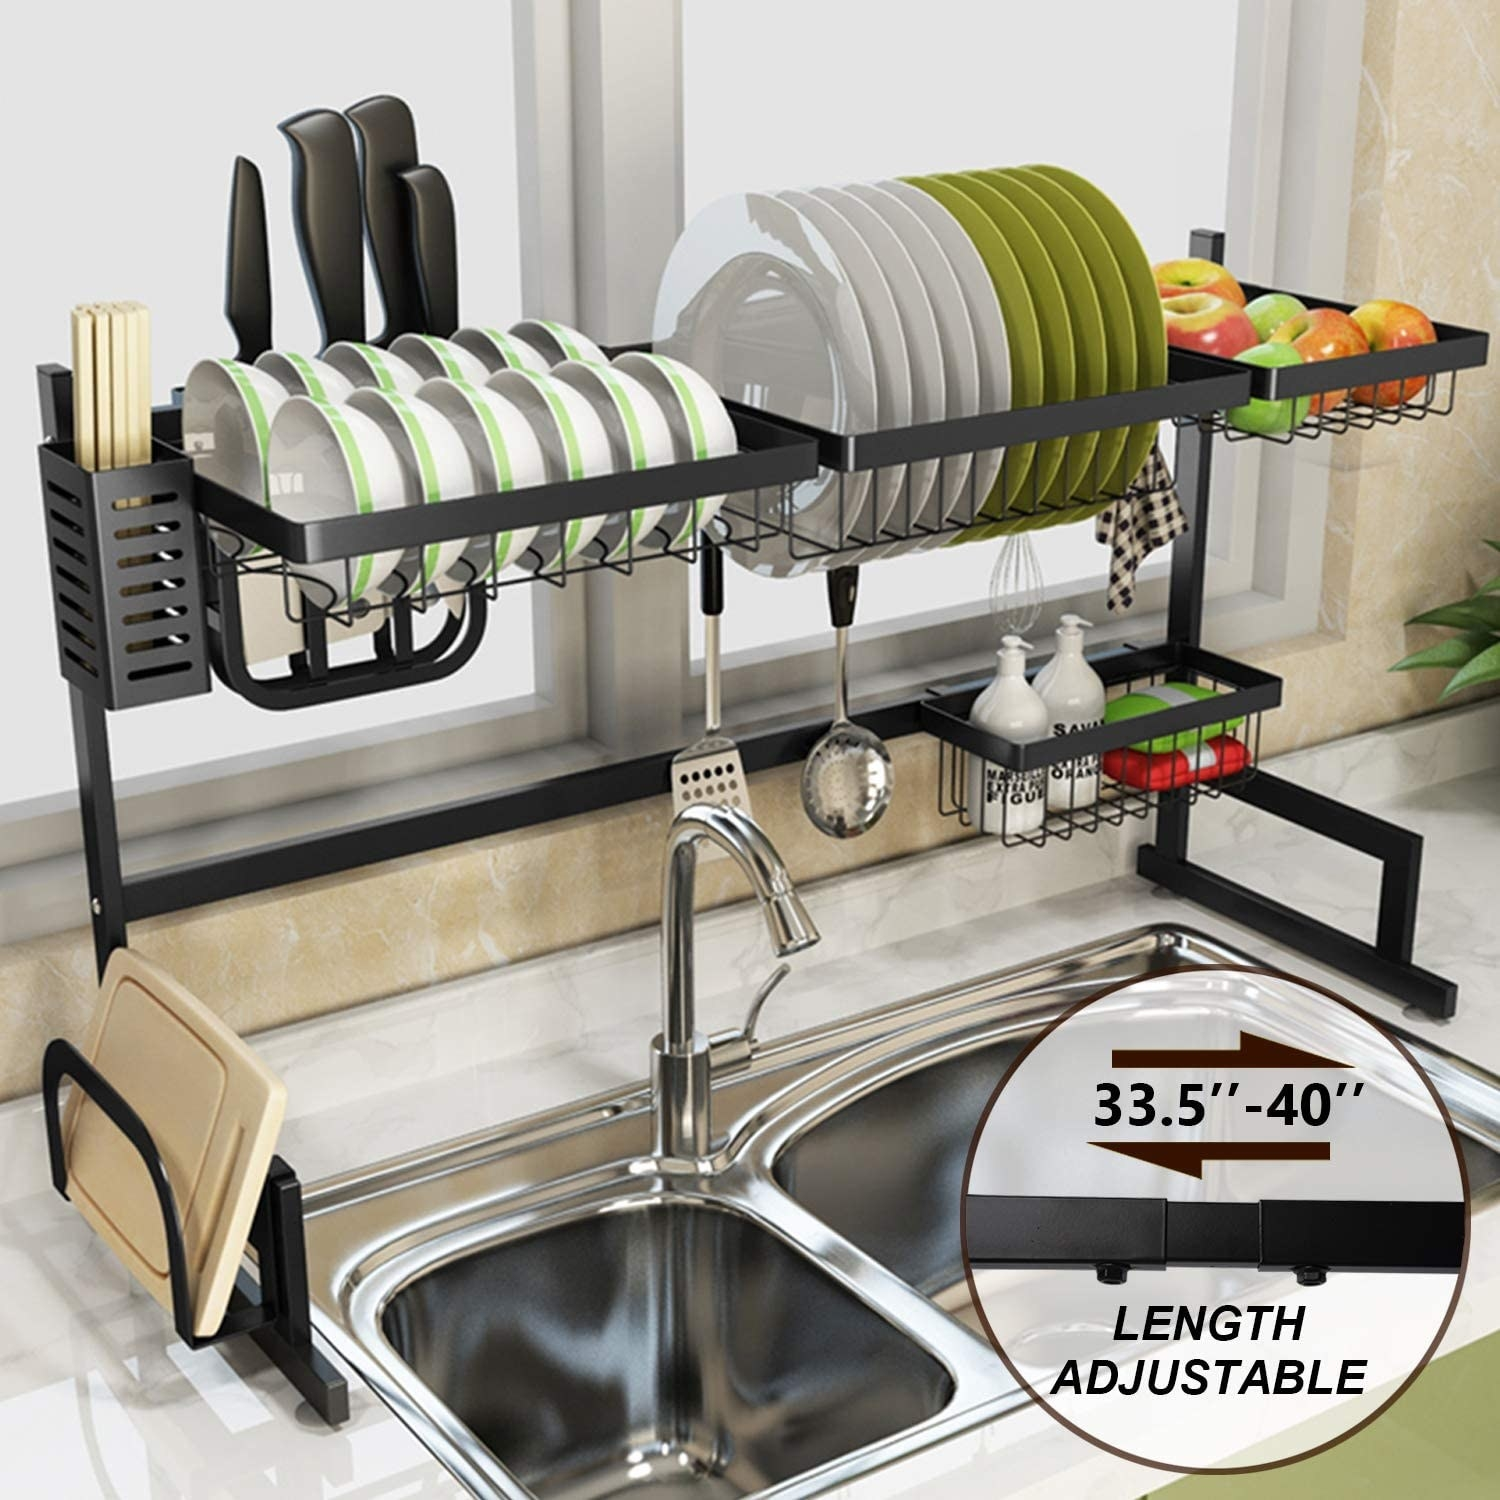 A black over the sink drying rack with different compartments for plates, bowls, cutlery, soap, cutting boards, and even fruit